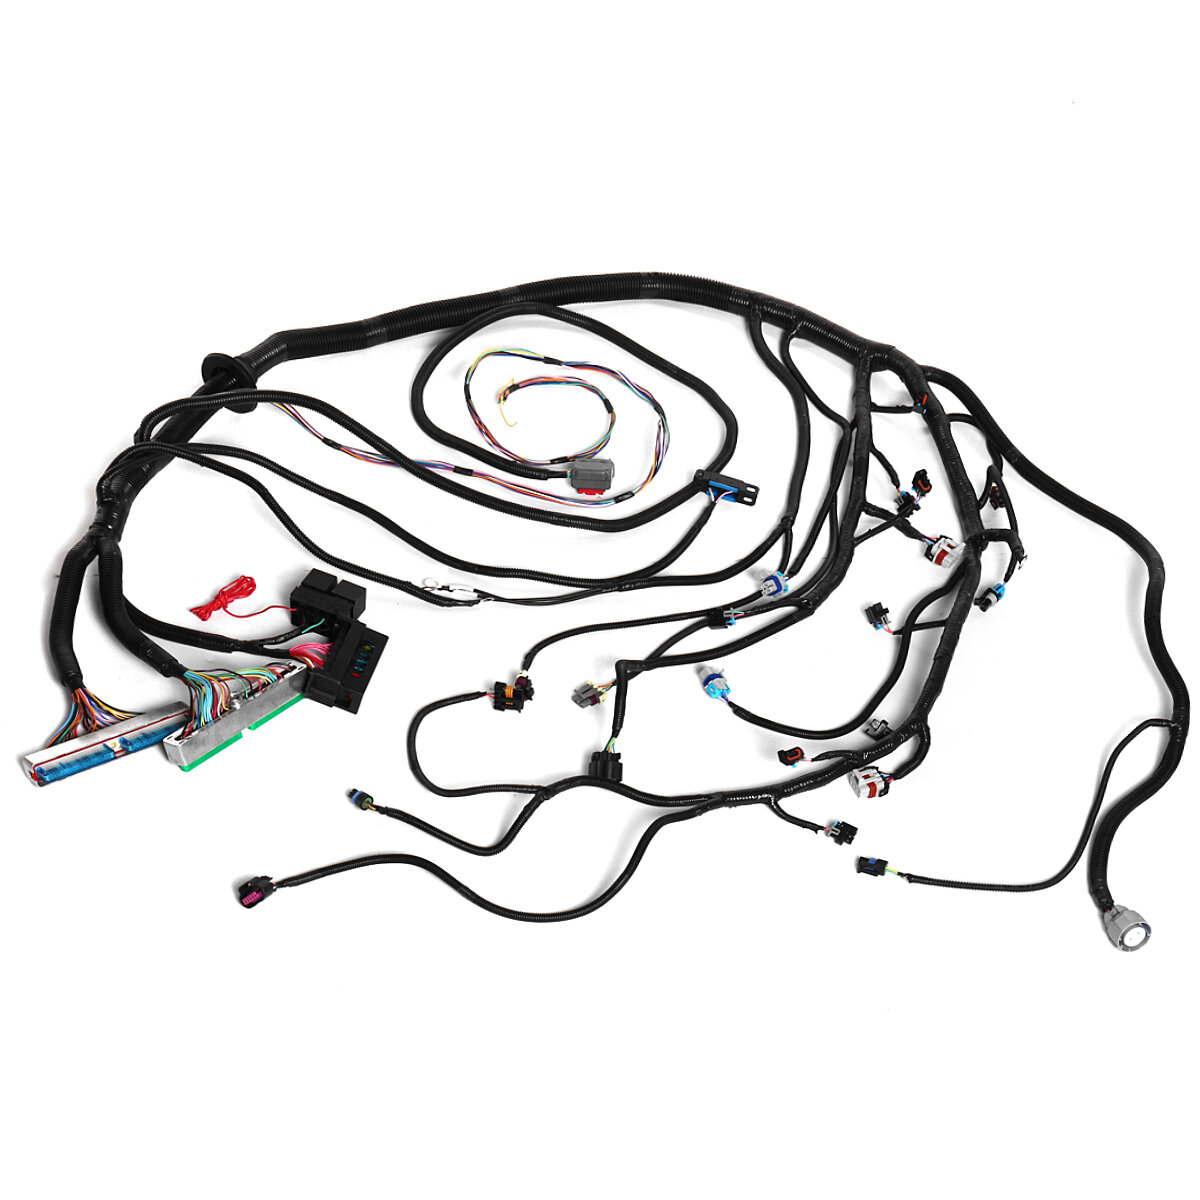 03 07 Ls Vortec Standalone Wiring Harness Drivebywire W